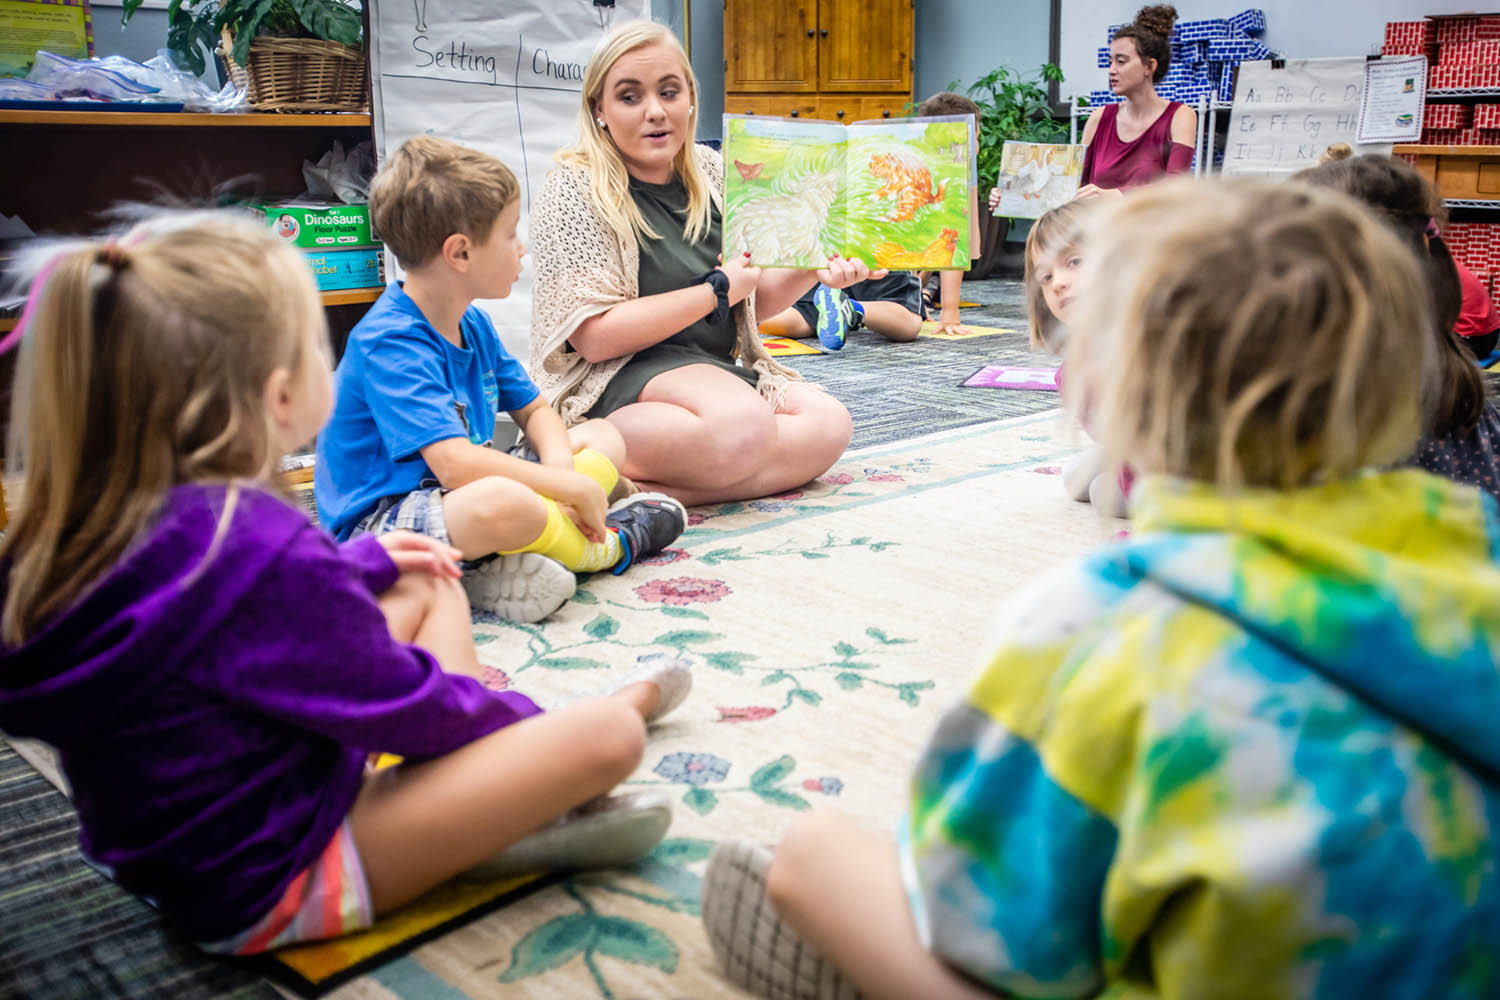 Northwest awarded $1.6 million to expand early child care for local families, learning for students